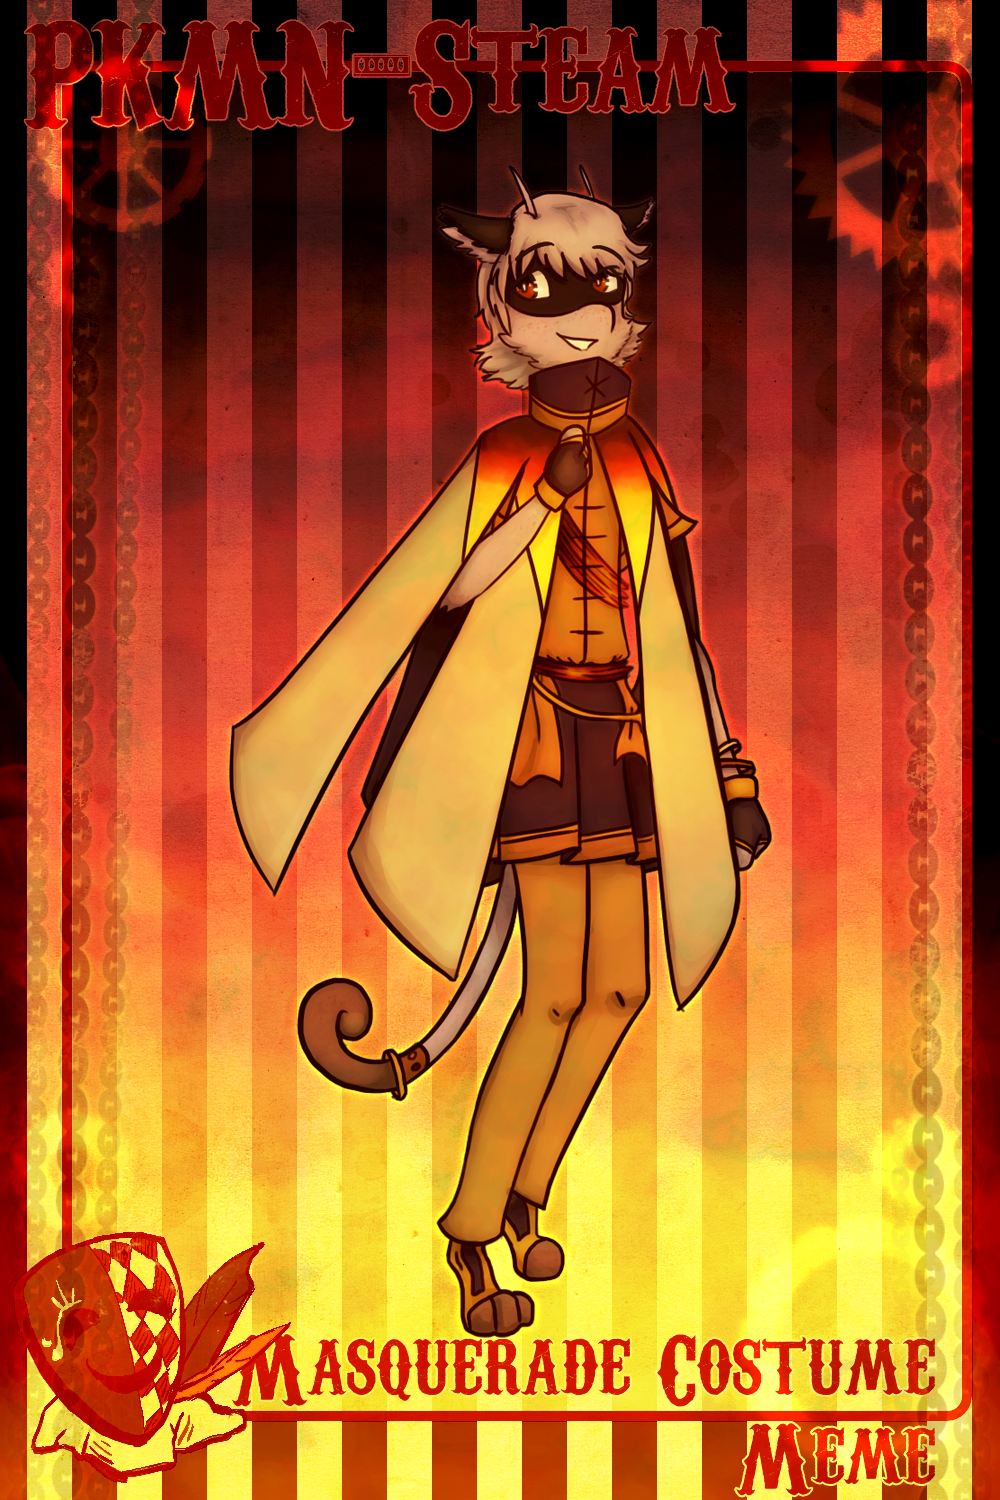 PS: The Sun (Masquerade Costume Meme - Oliver)